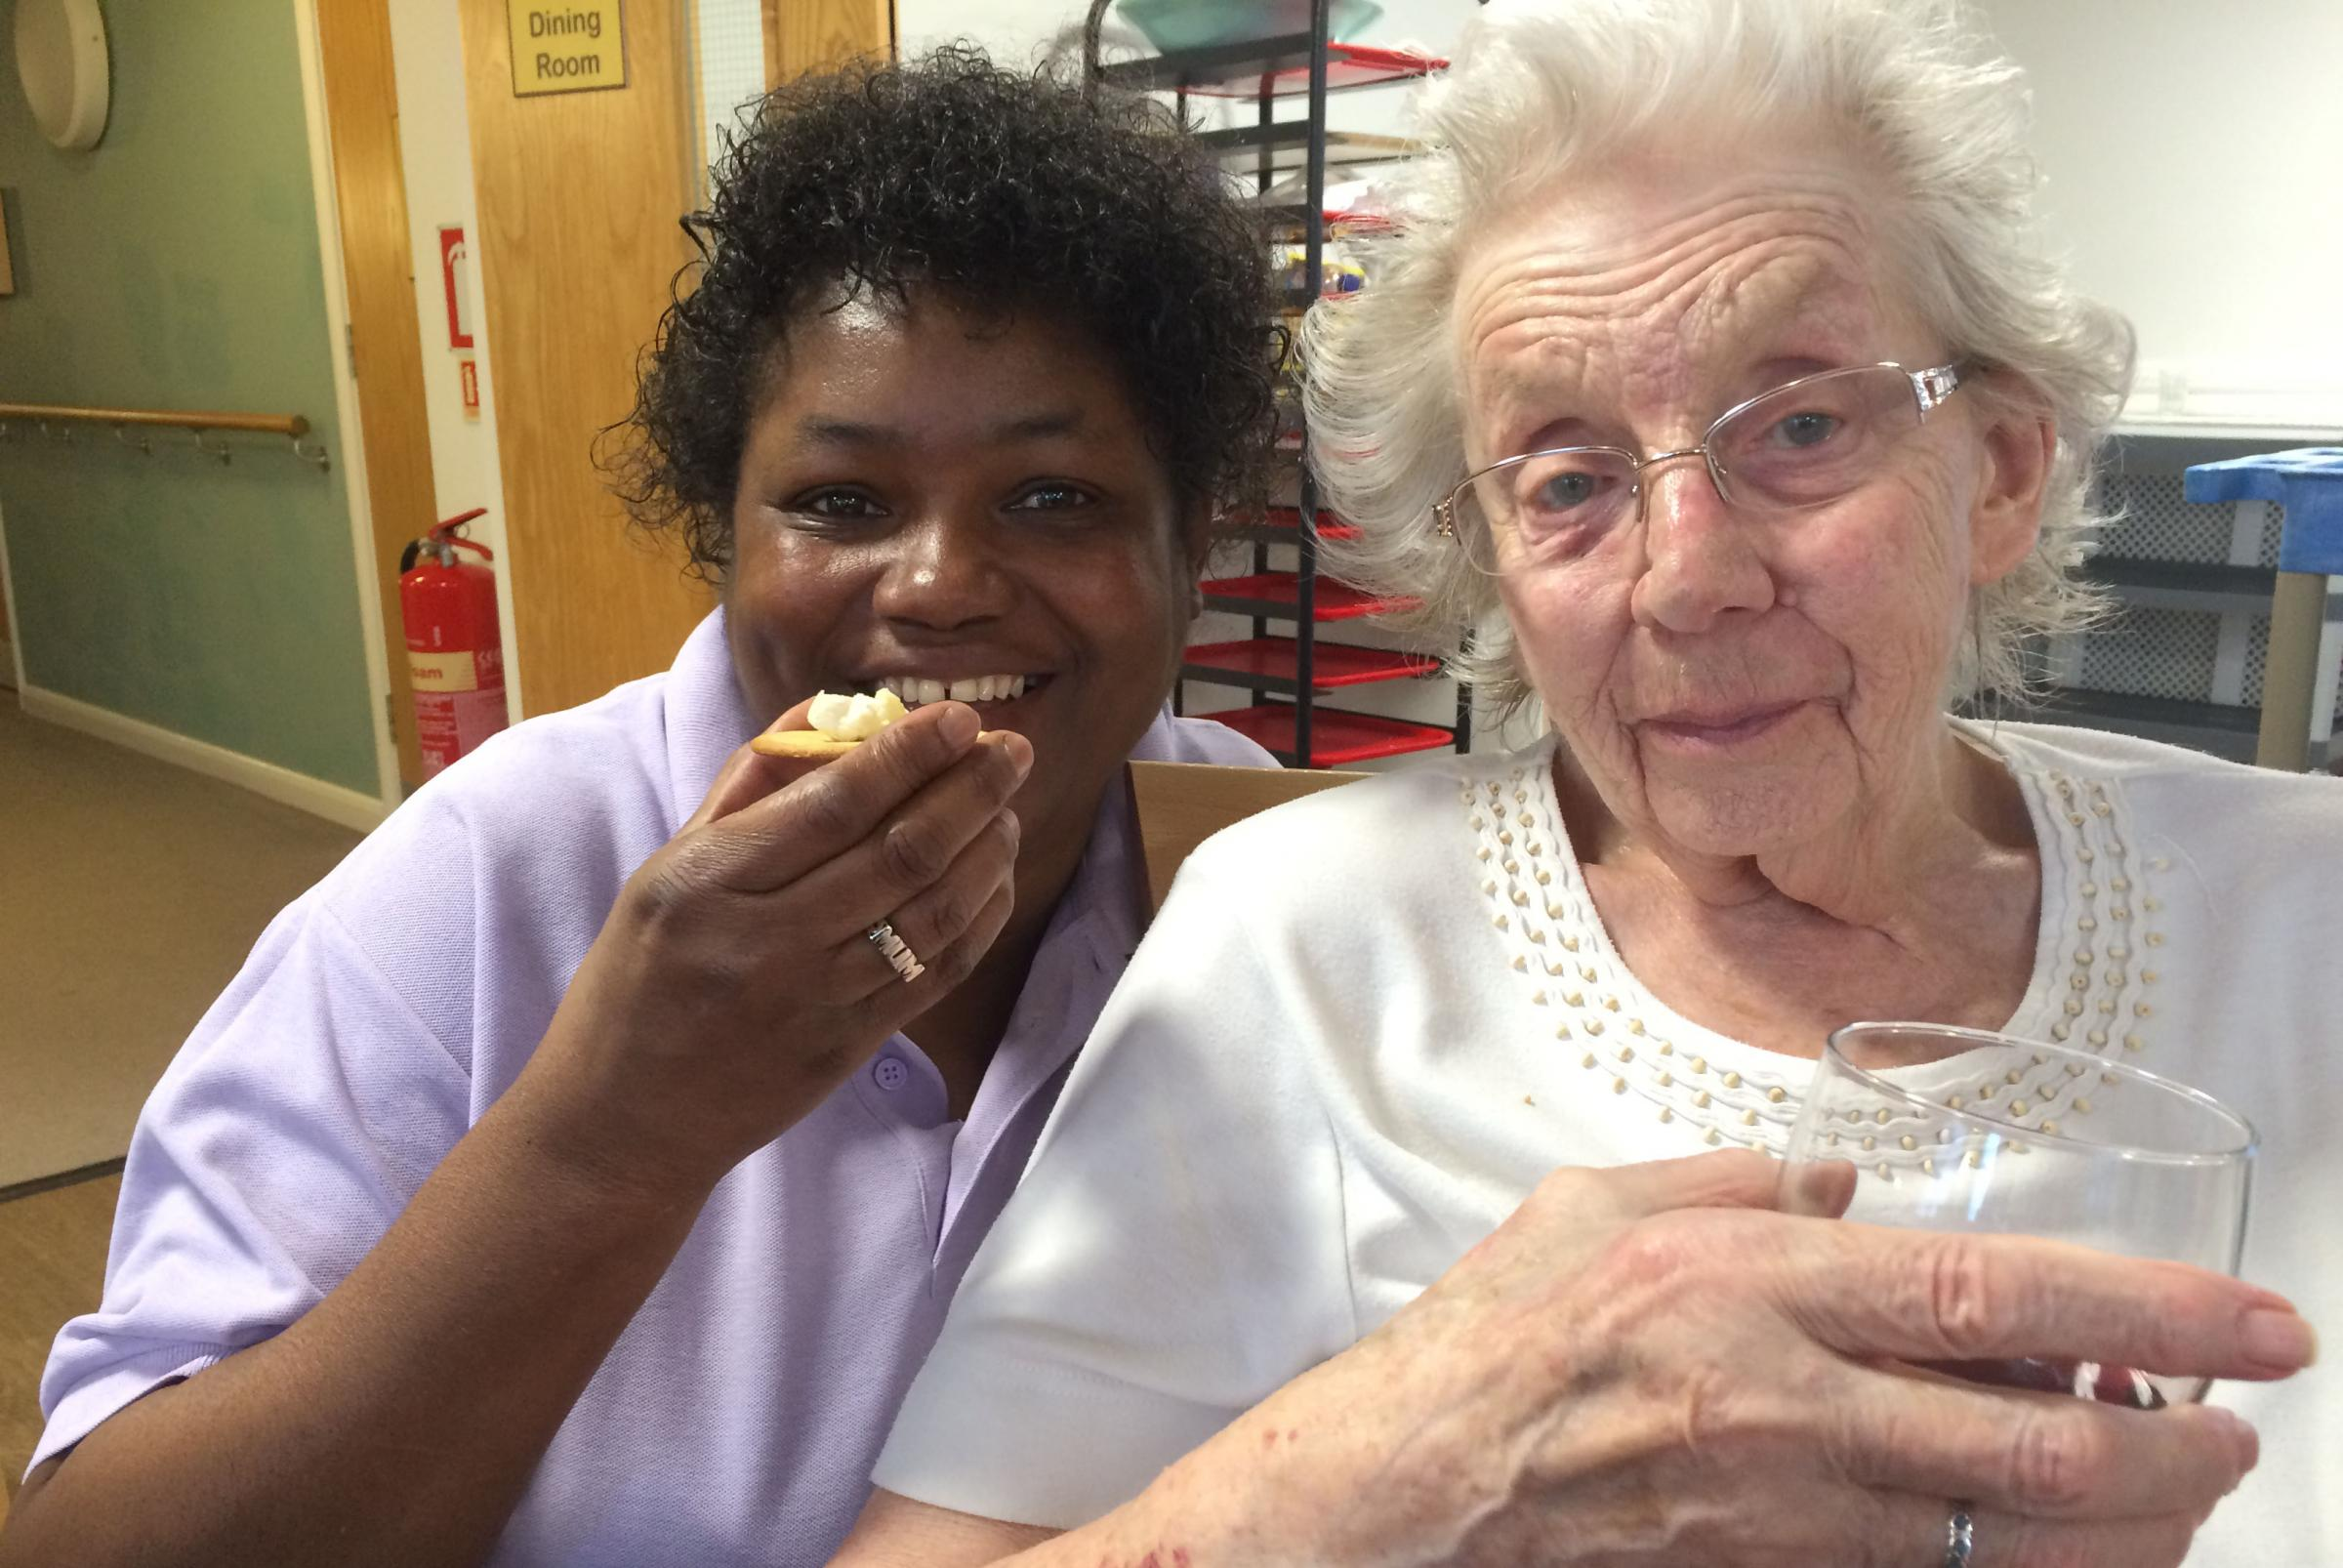 Care assistant Yvonne Roberts and resident Mary Woolcott